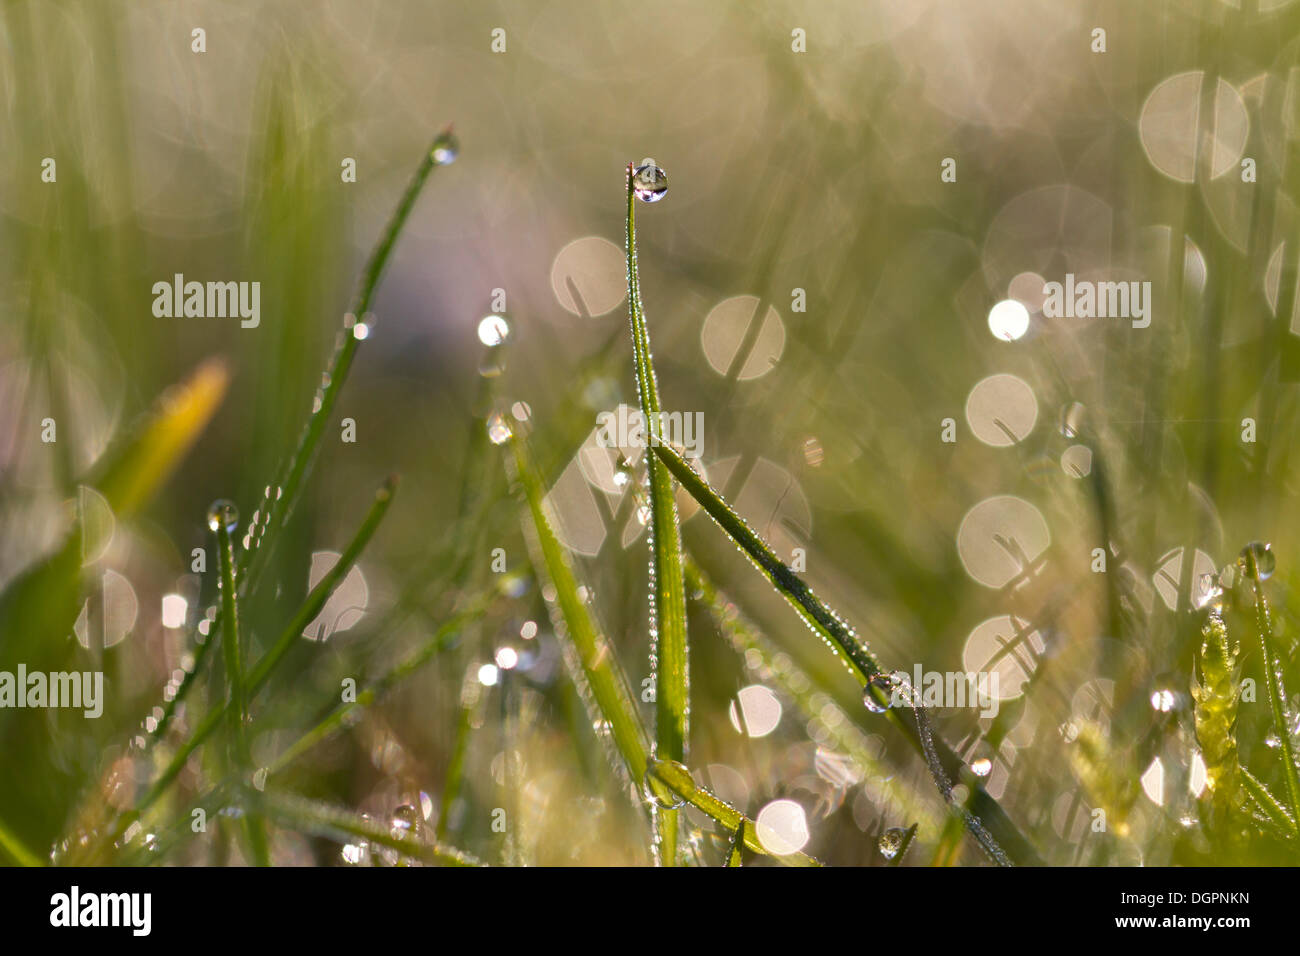 Blades of grass with sparkling dew drops in the morning lightNON EXCLUSIVE USAGE FOR CALENDAR, 2015, TERRITORY: D, A, CH - Stock Image